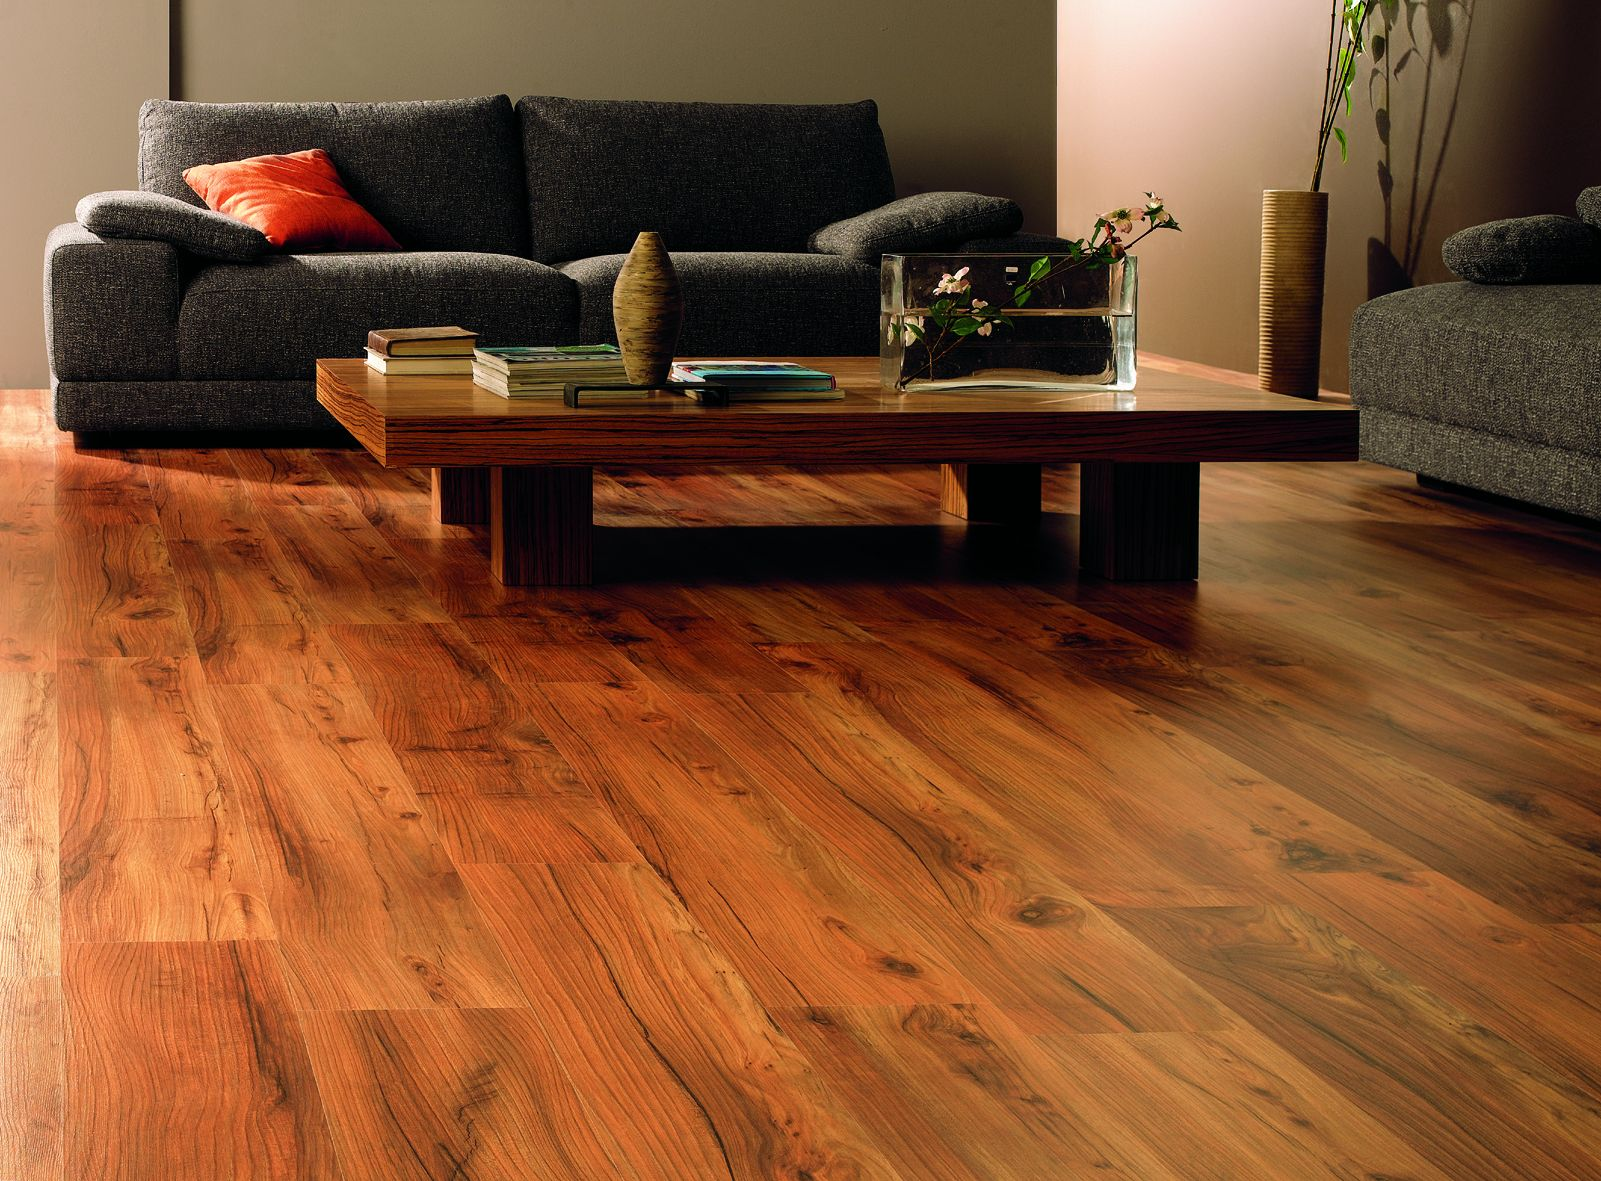 16 Wooden Floor Designs Images